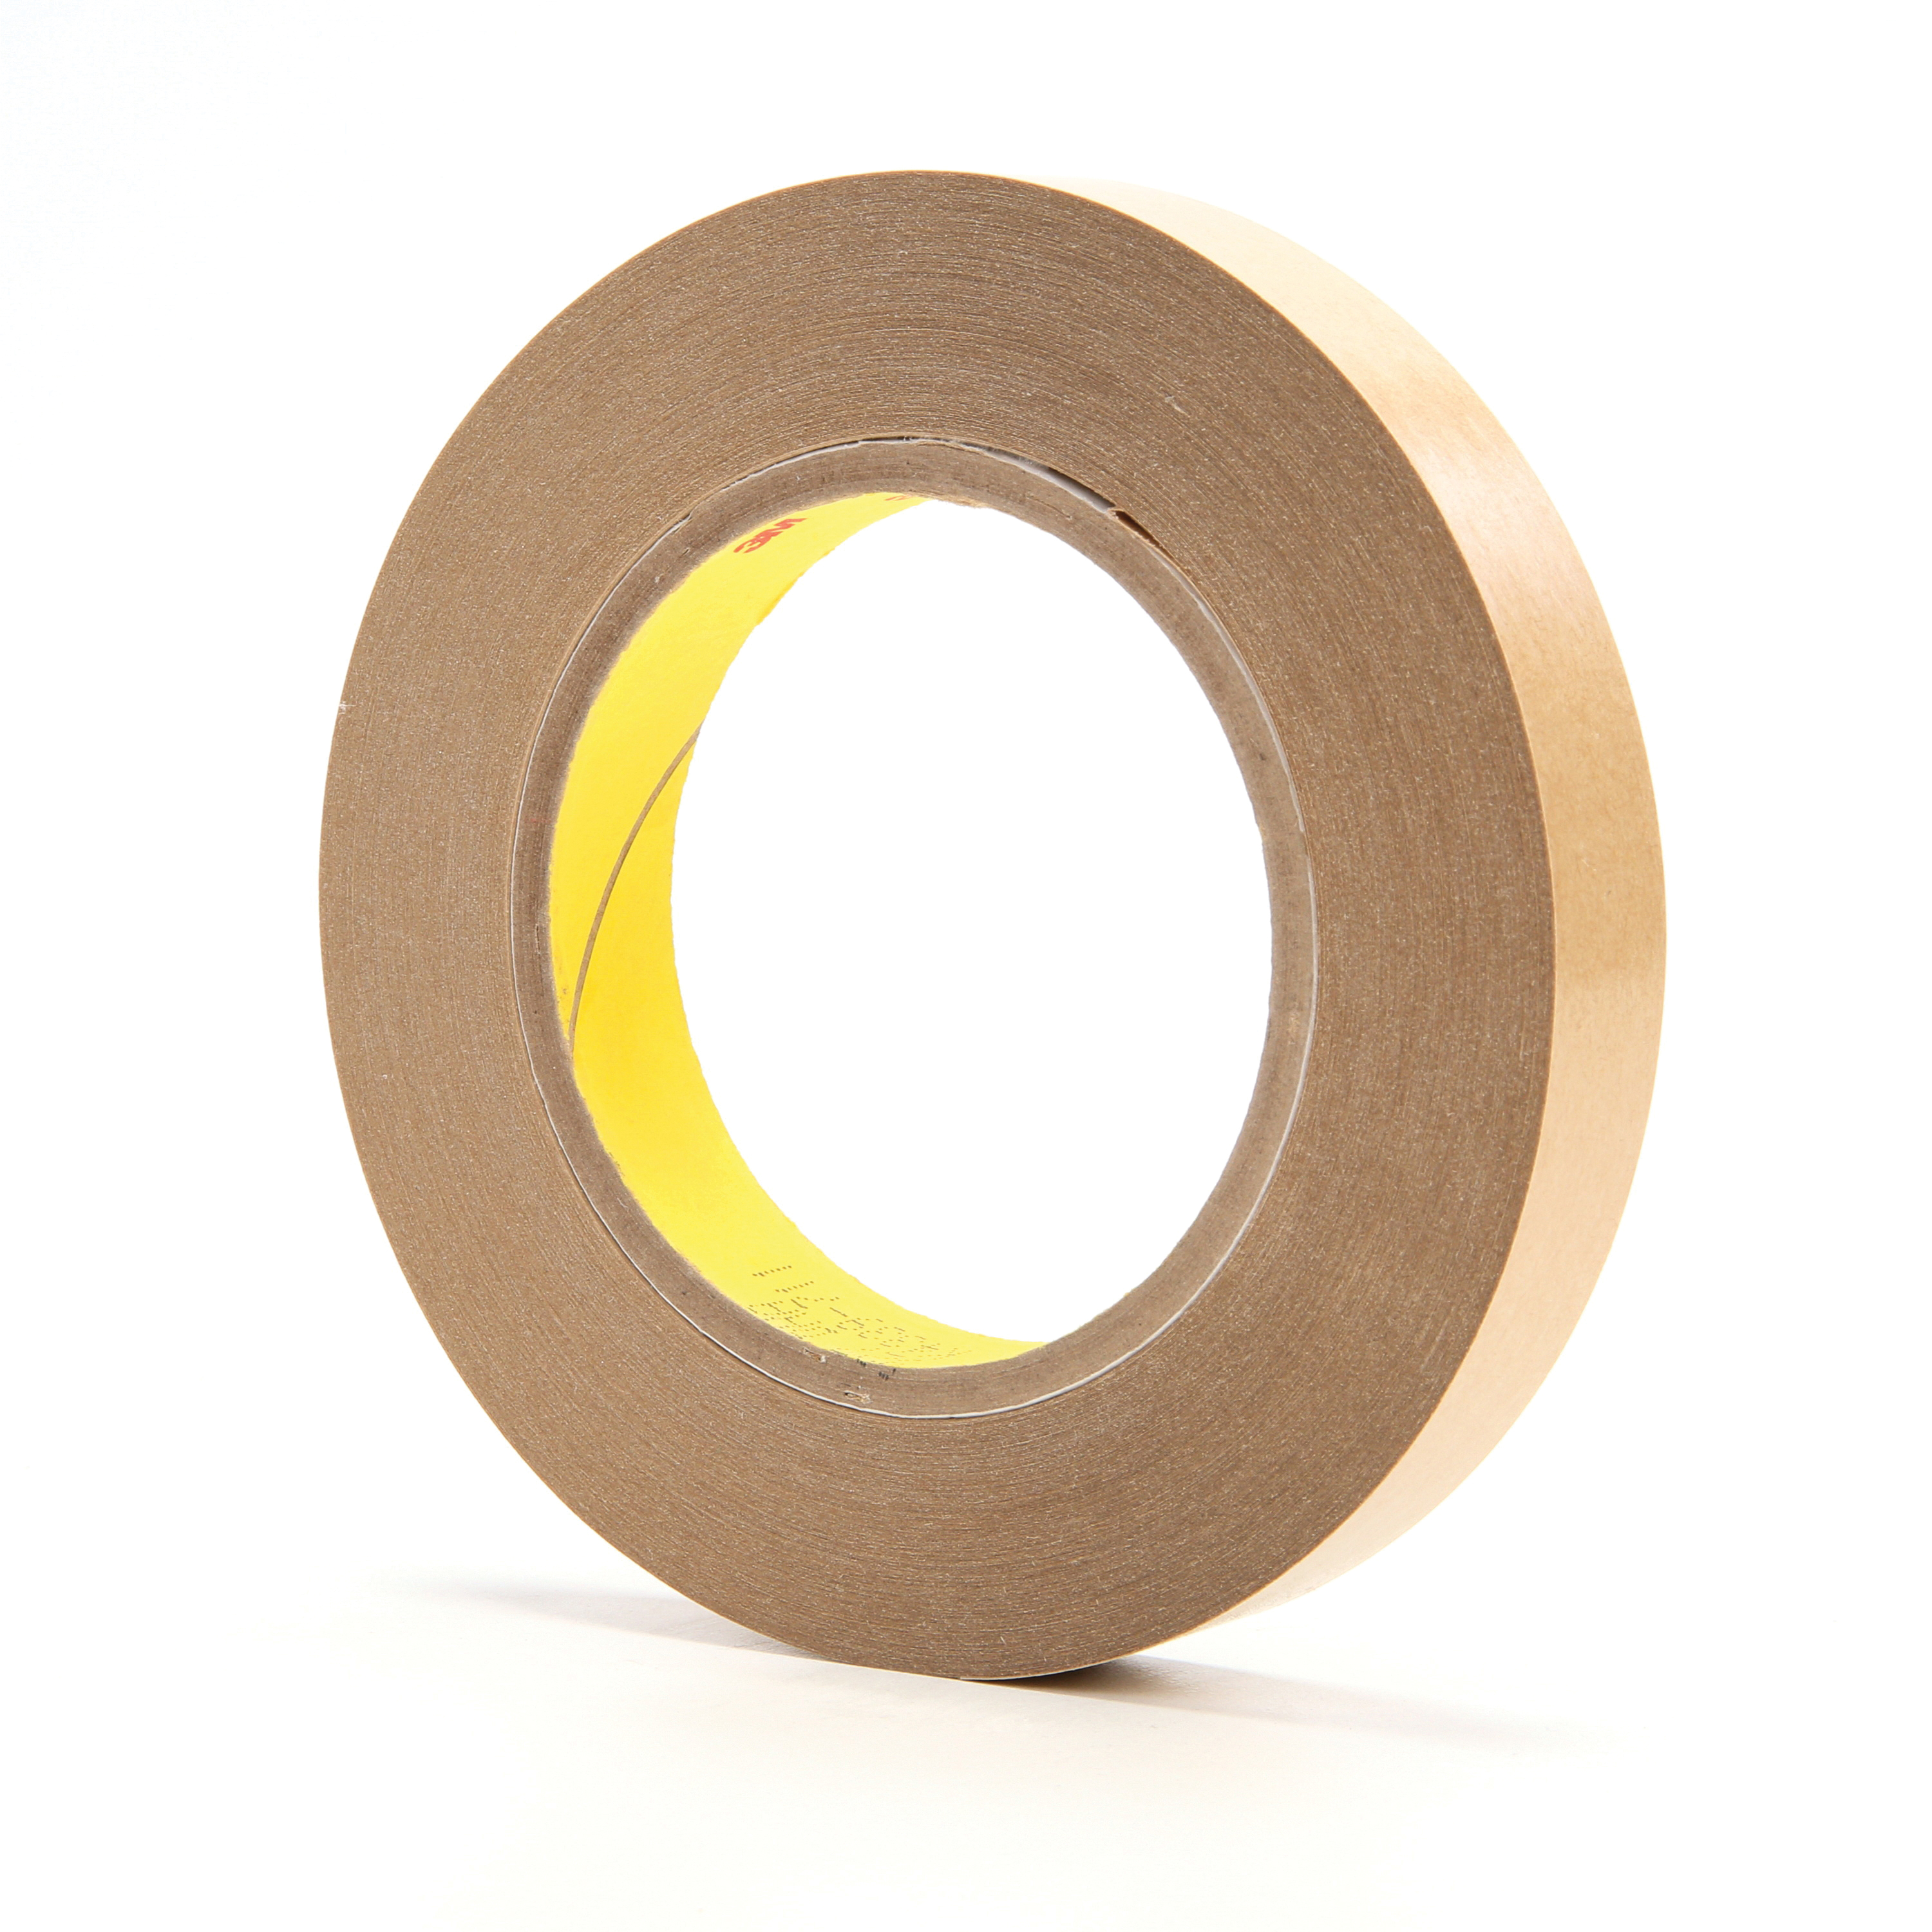 3M™ 021200-05277 High Tack Adhesive Transfer Tape, 60 yd L x 3/4 in W, 5.5 mil THK, 2 mil 300 Acrylic Adhesive, Clear